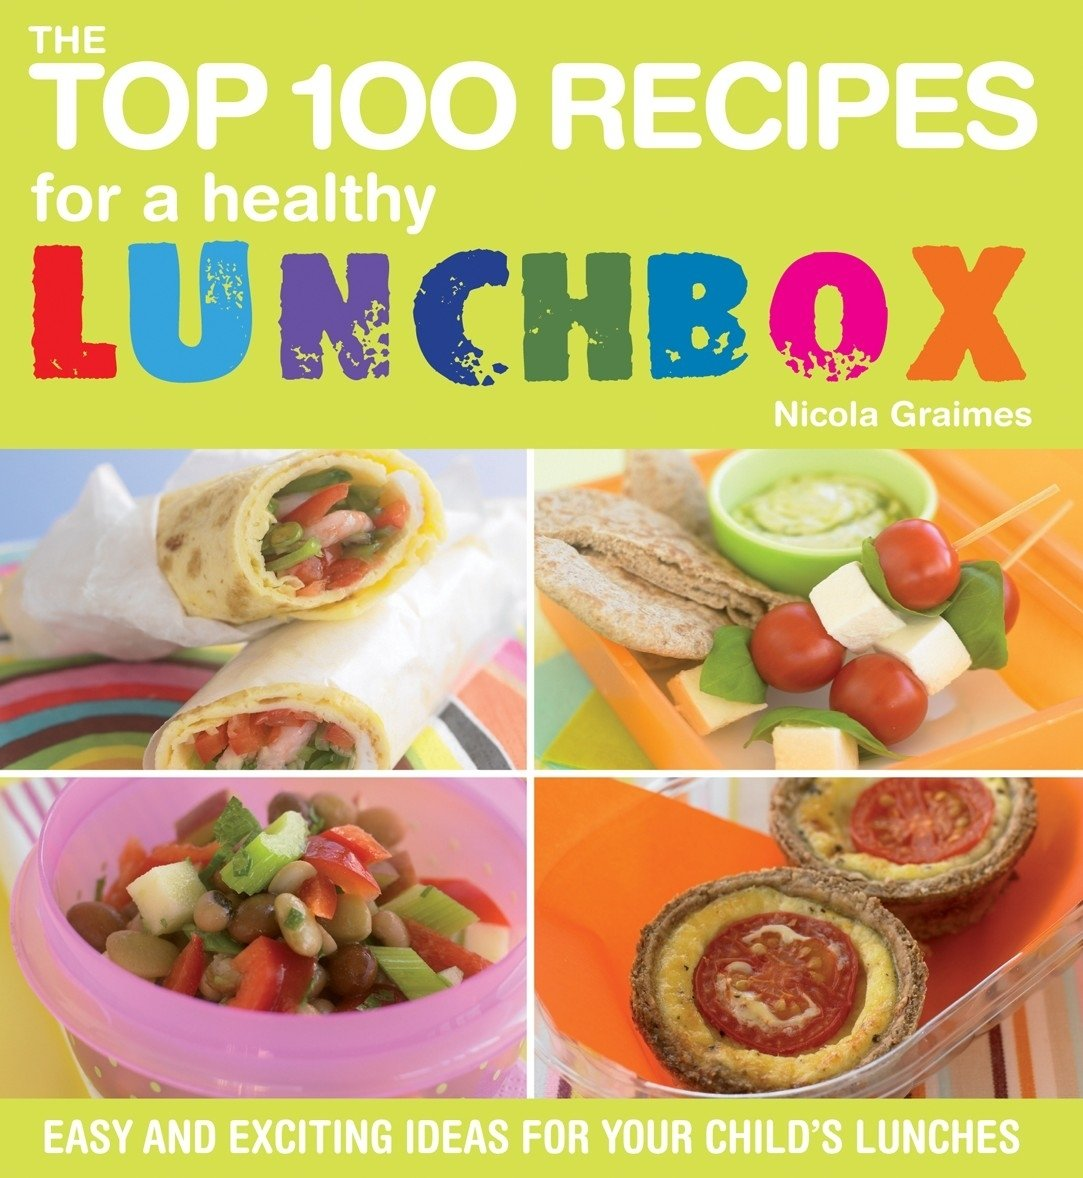 10 Pretty Healthy Lunchbox Ideas For Kids the top 100 recipes for a healthy lunchbox lunch ideas nourish 2 2020